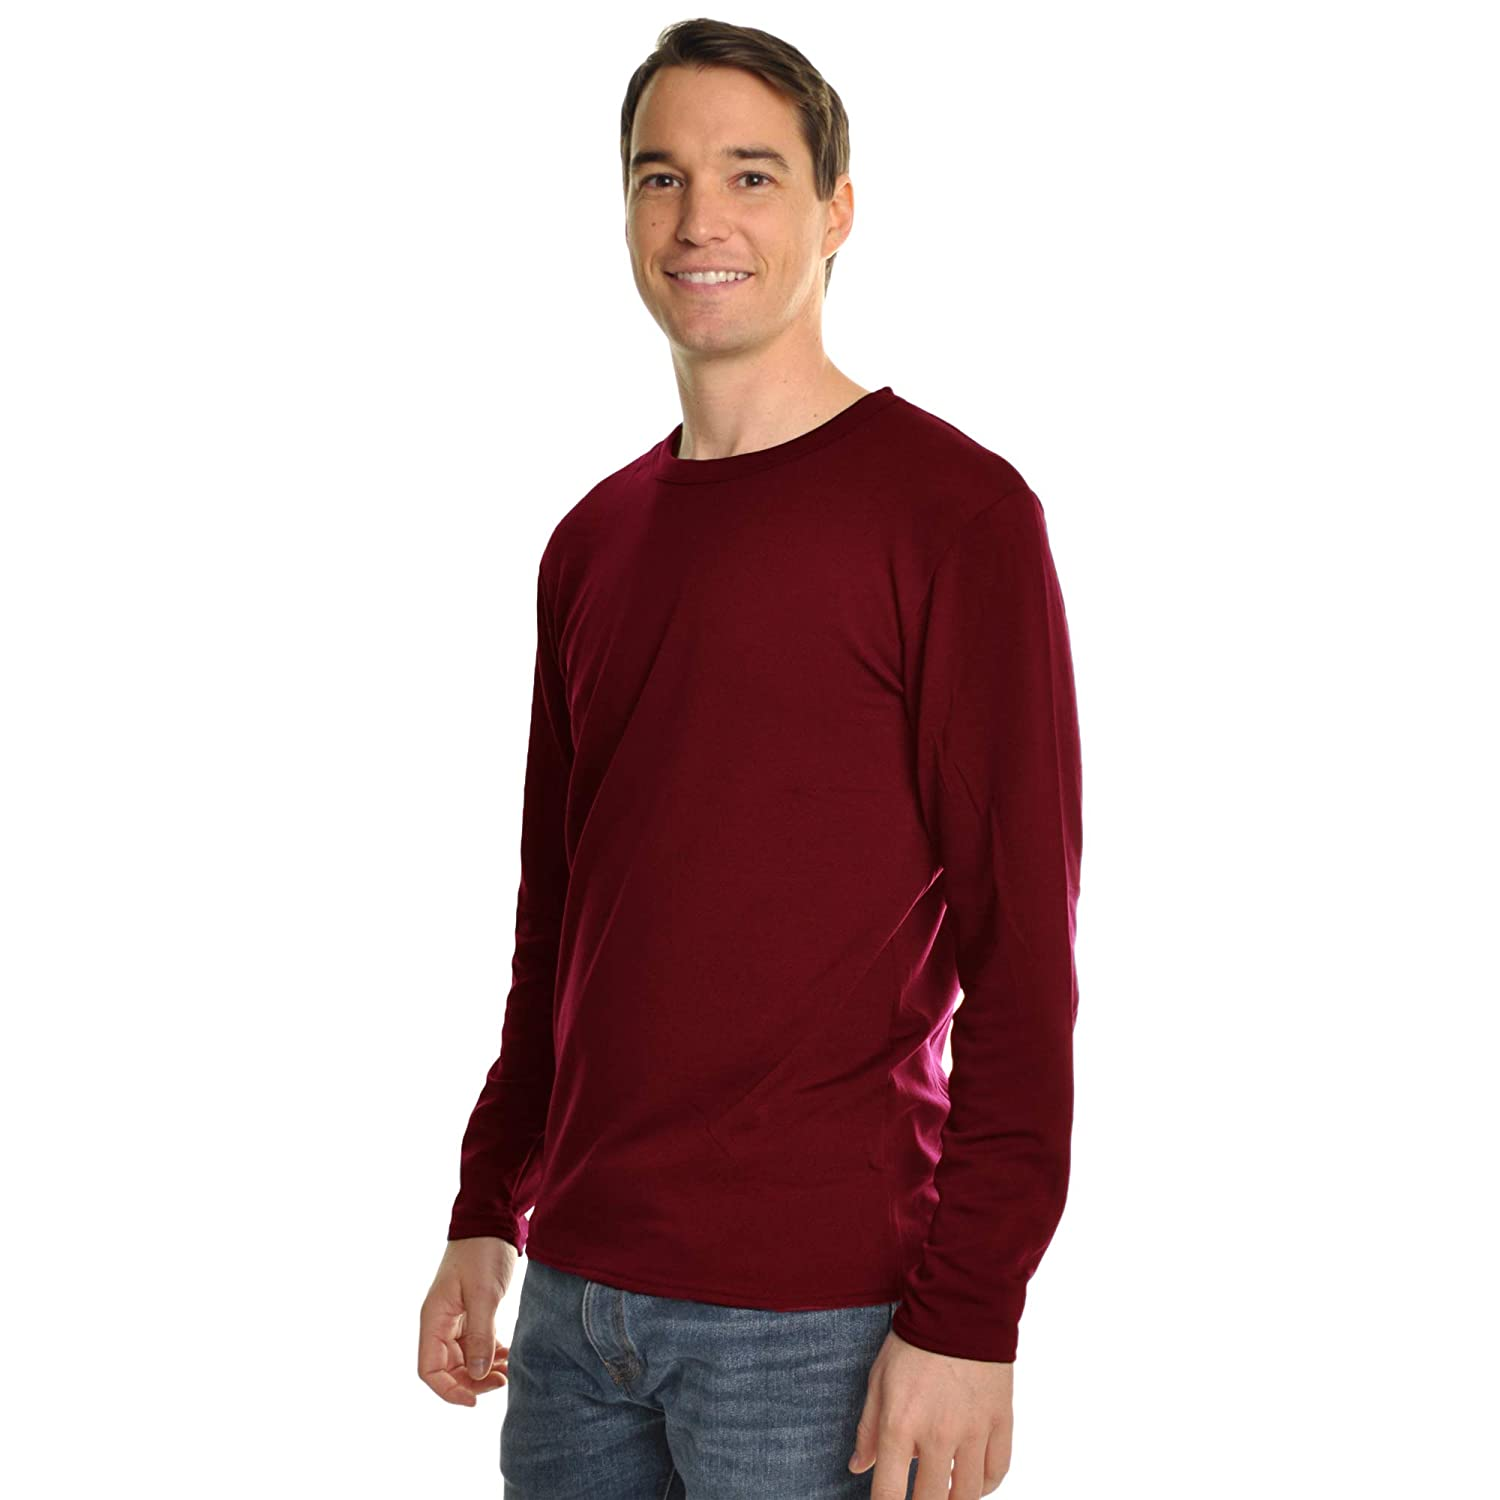 959089ca9c8 Swan Men's Fleece-Lined Crew Neck Long Sleeve Thermal Tops at Amazon Men's  Clothing store: